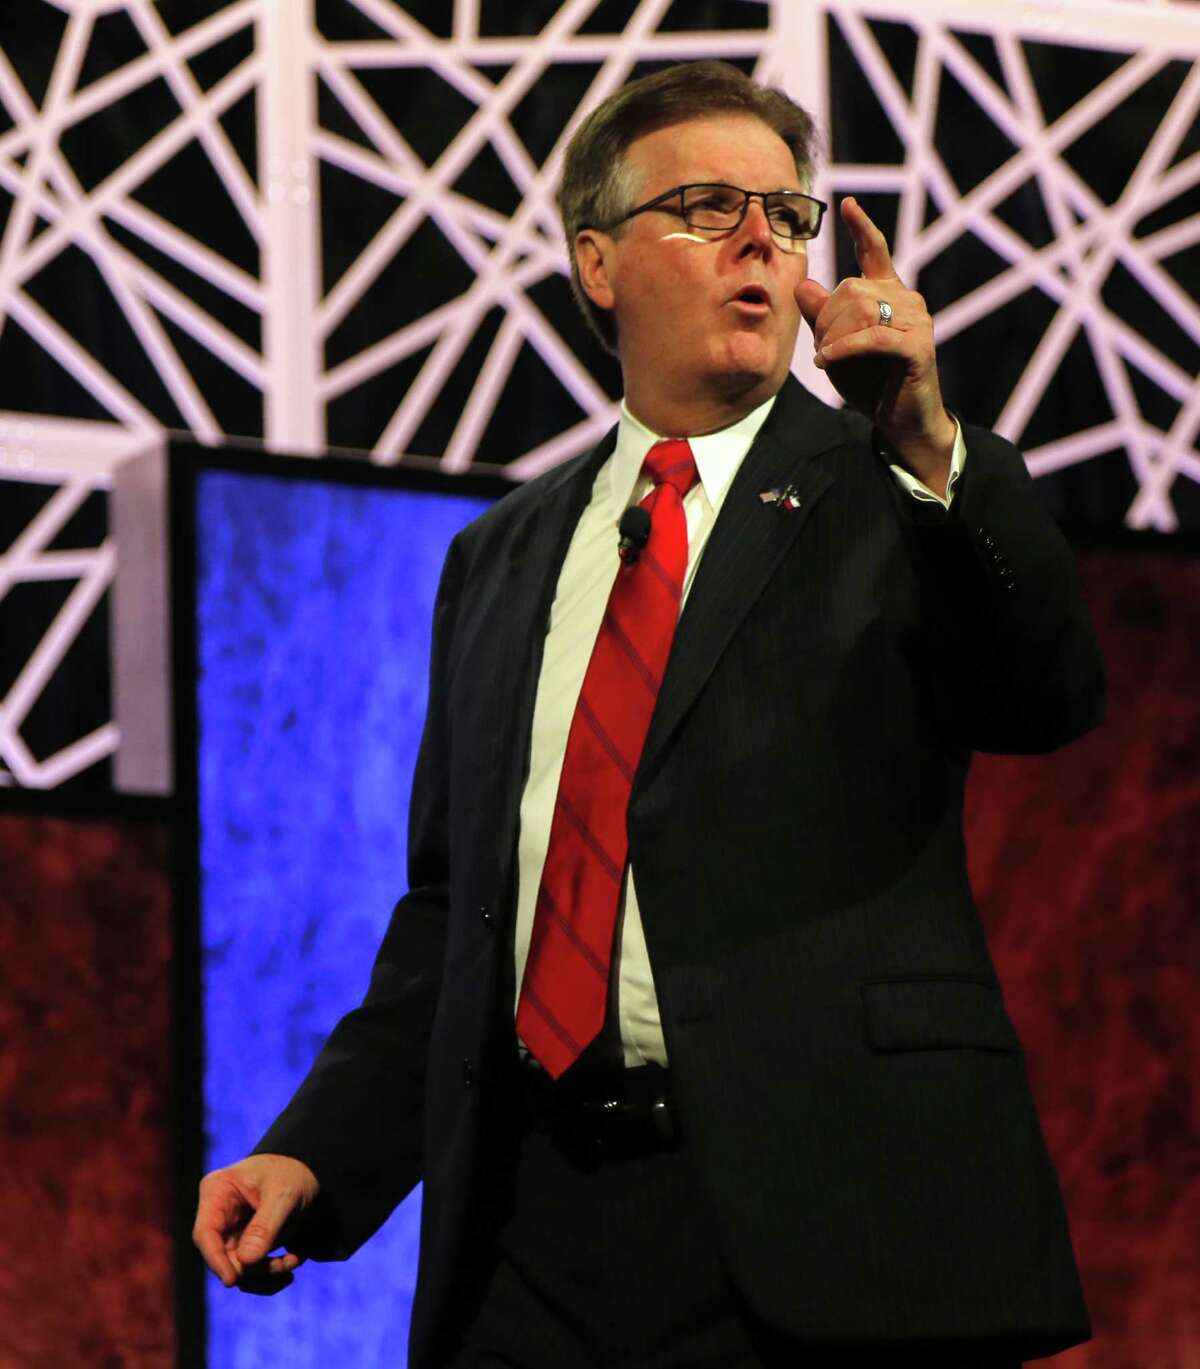 Lt. Gov. Dan Patrick speaks at the Republican Party of Texas State Convention at the Kay Bailey Hutchison Convention Center, on May 12 in Dallas. He has called for a cut in what he says is a back-door tuition hike - a move that will affect financial aid for disadvantaged students.